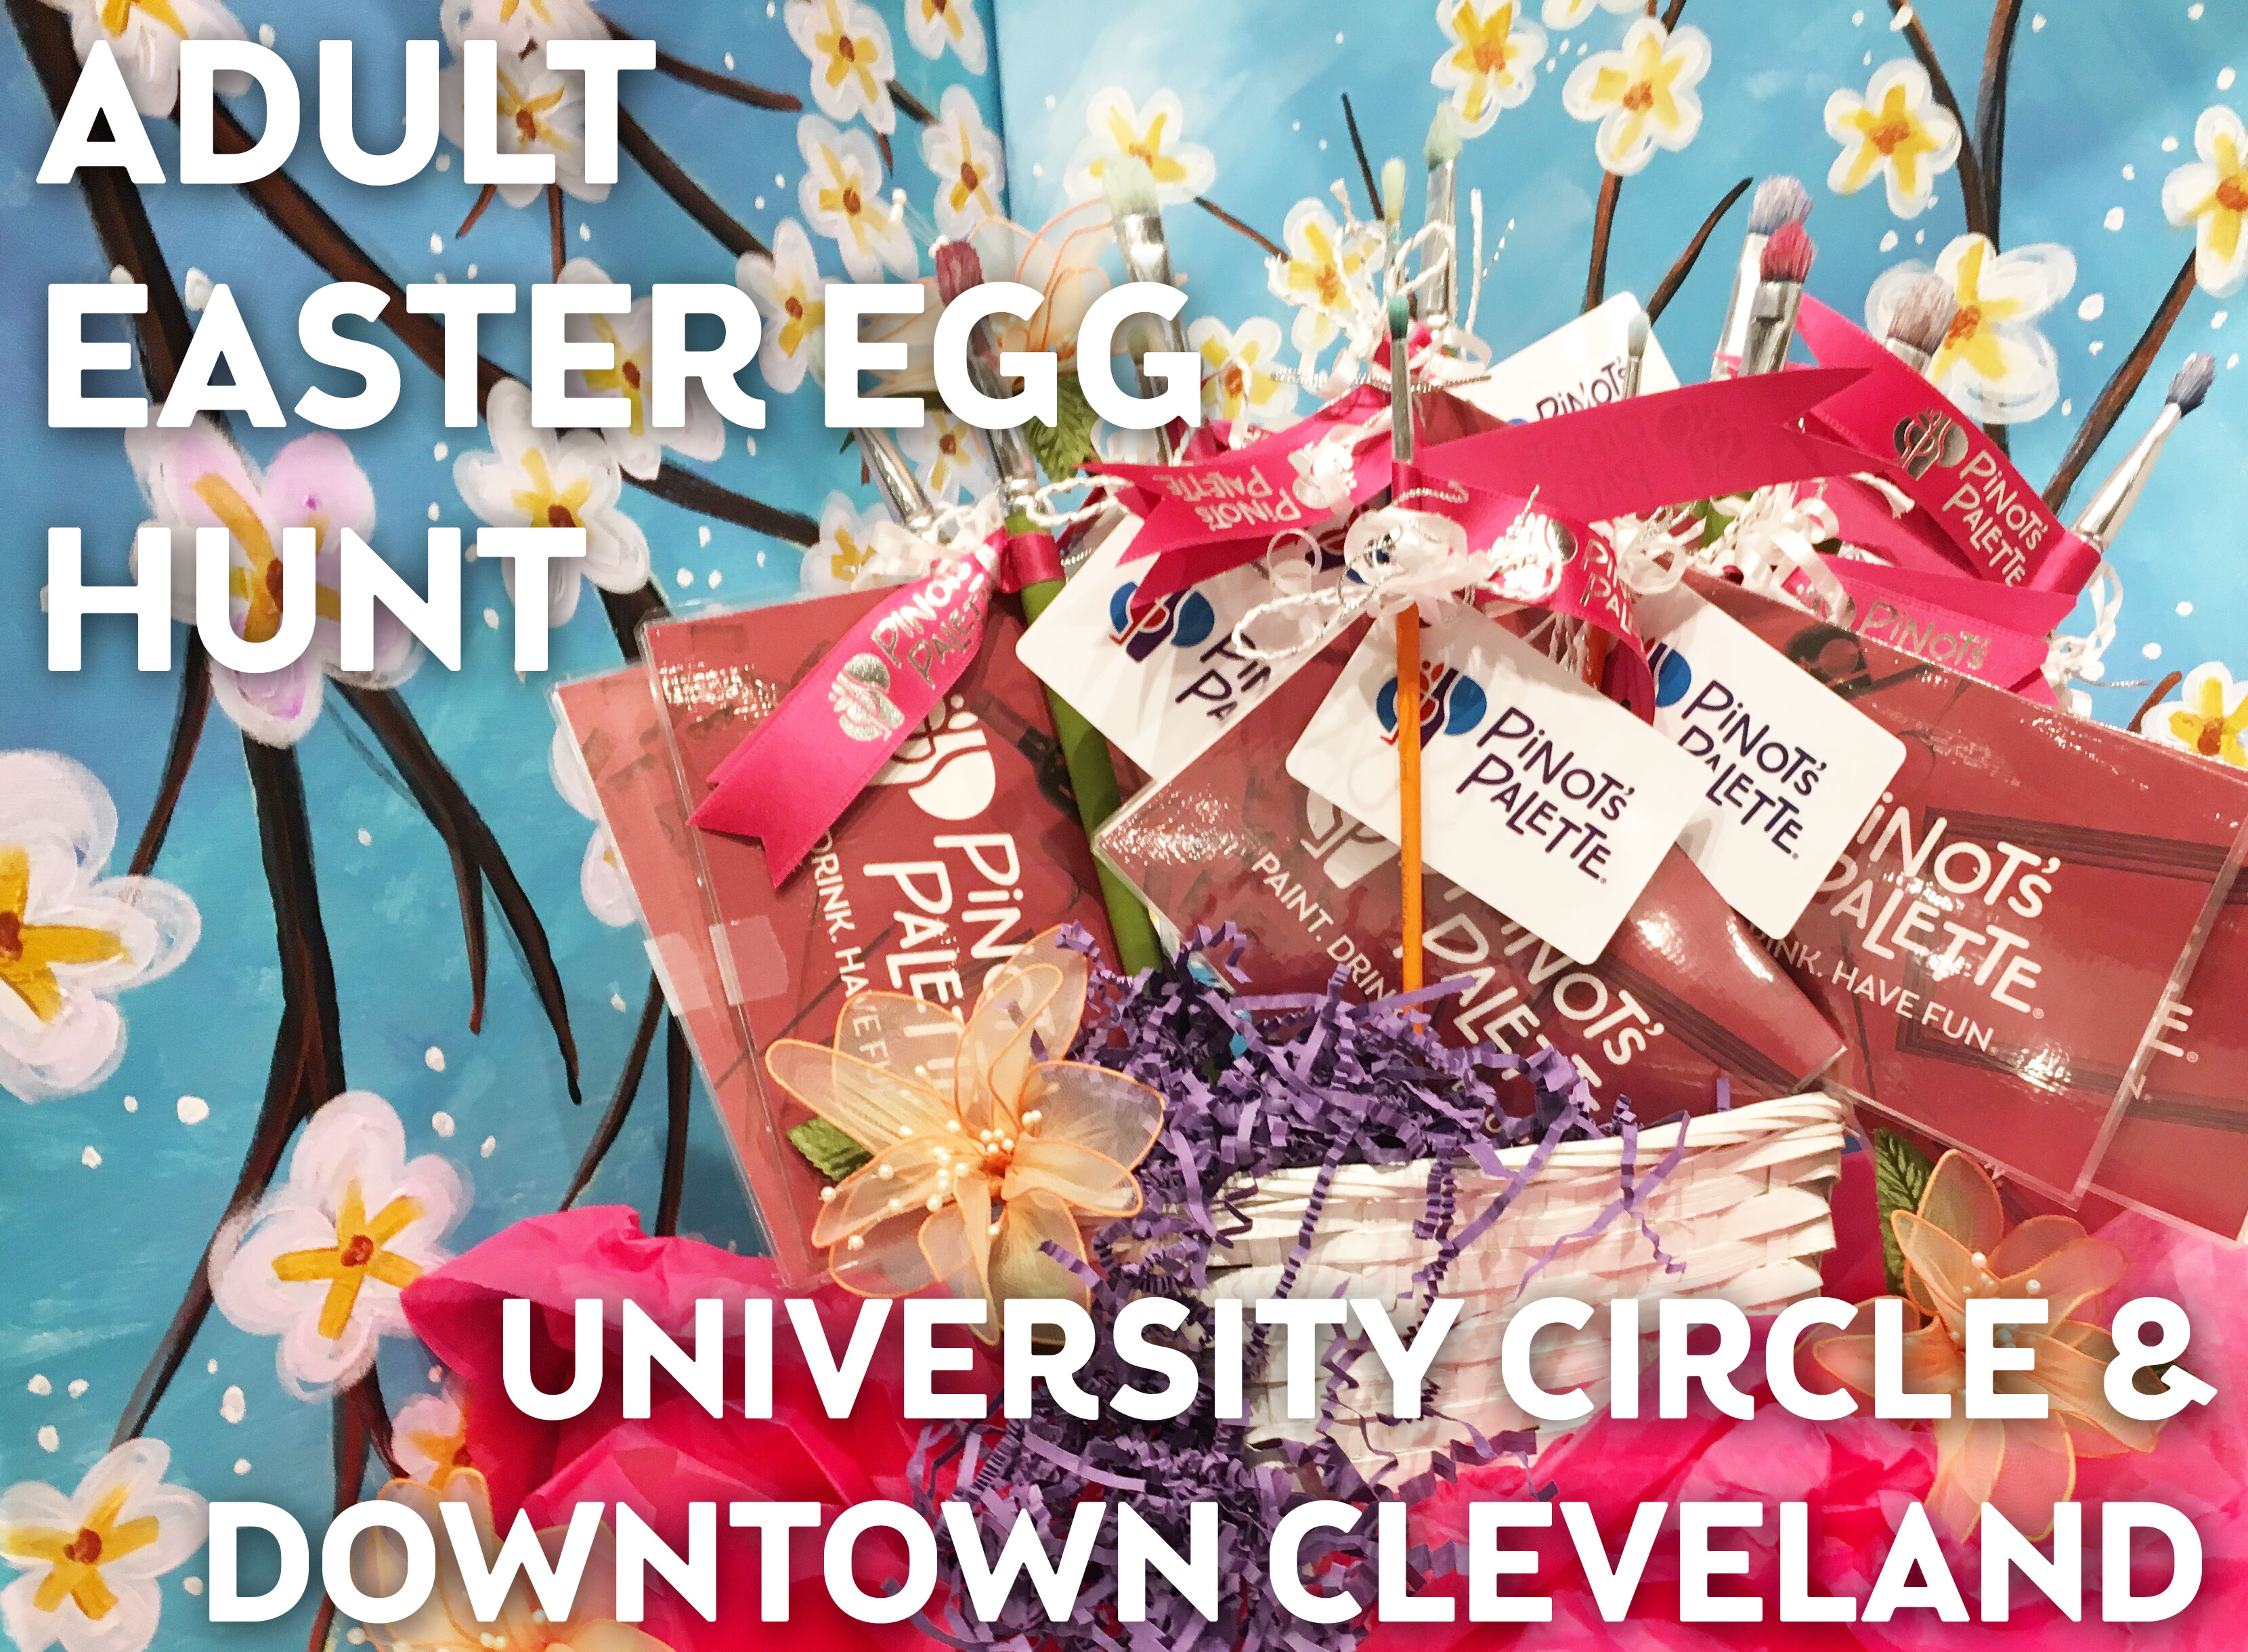 Adult Easter Egg Hunt - University Circle and Downtown Cleveland